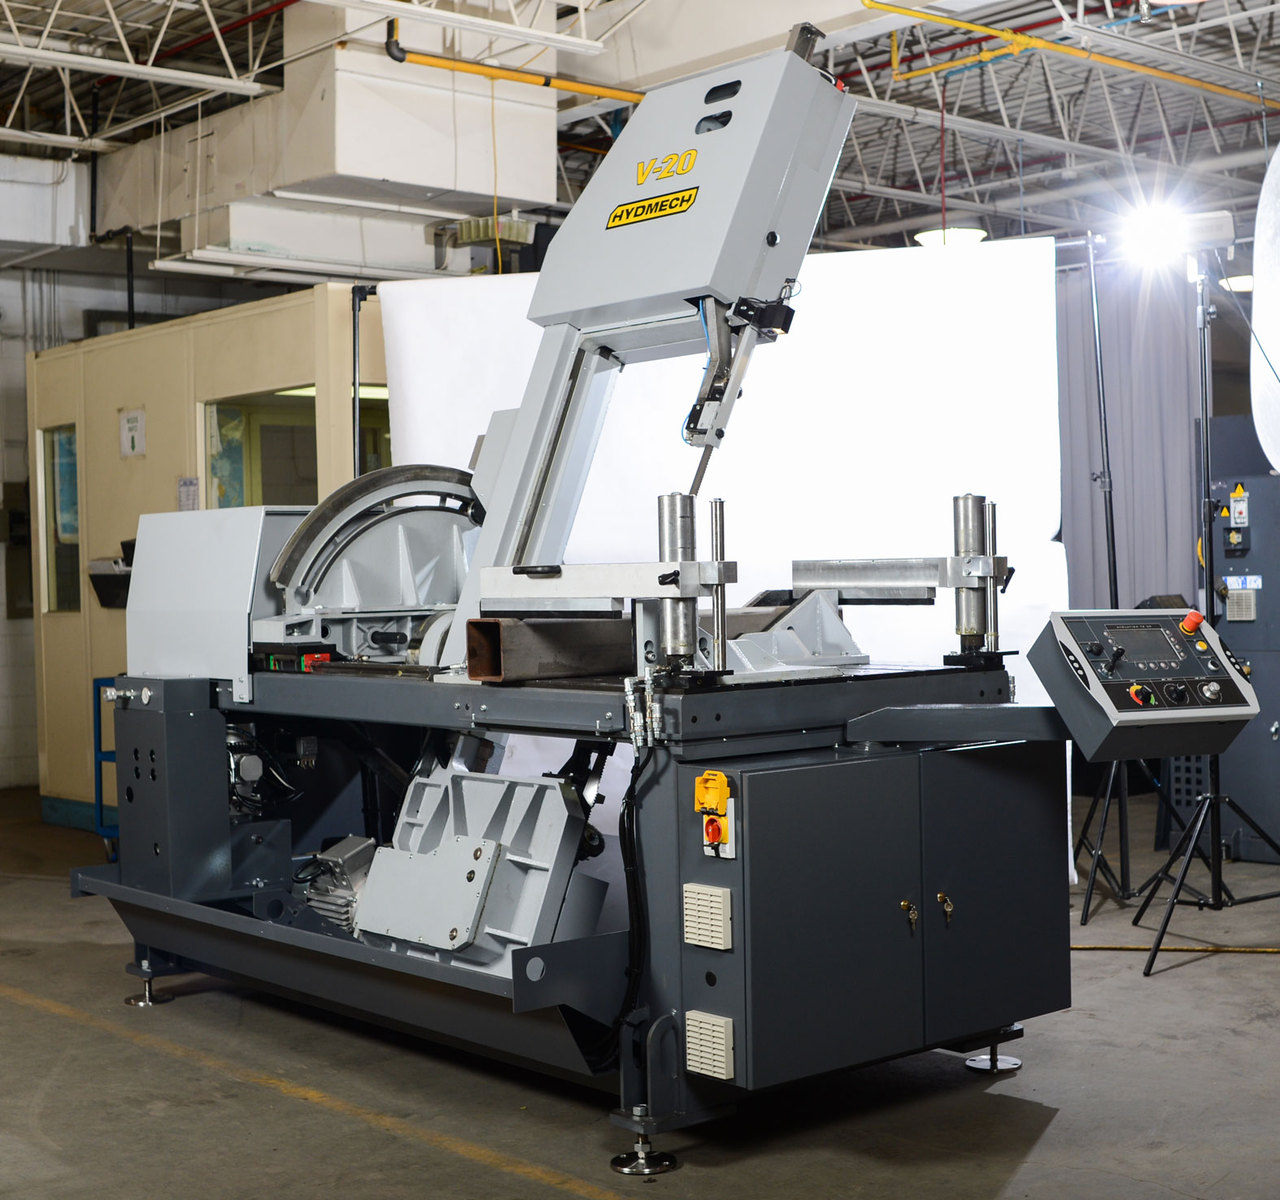 Hyd-Mech V-20 Semi-Automatic Vertical Band Saw